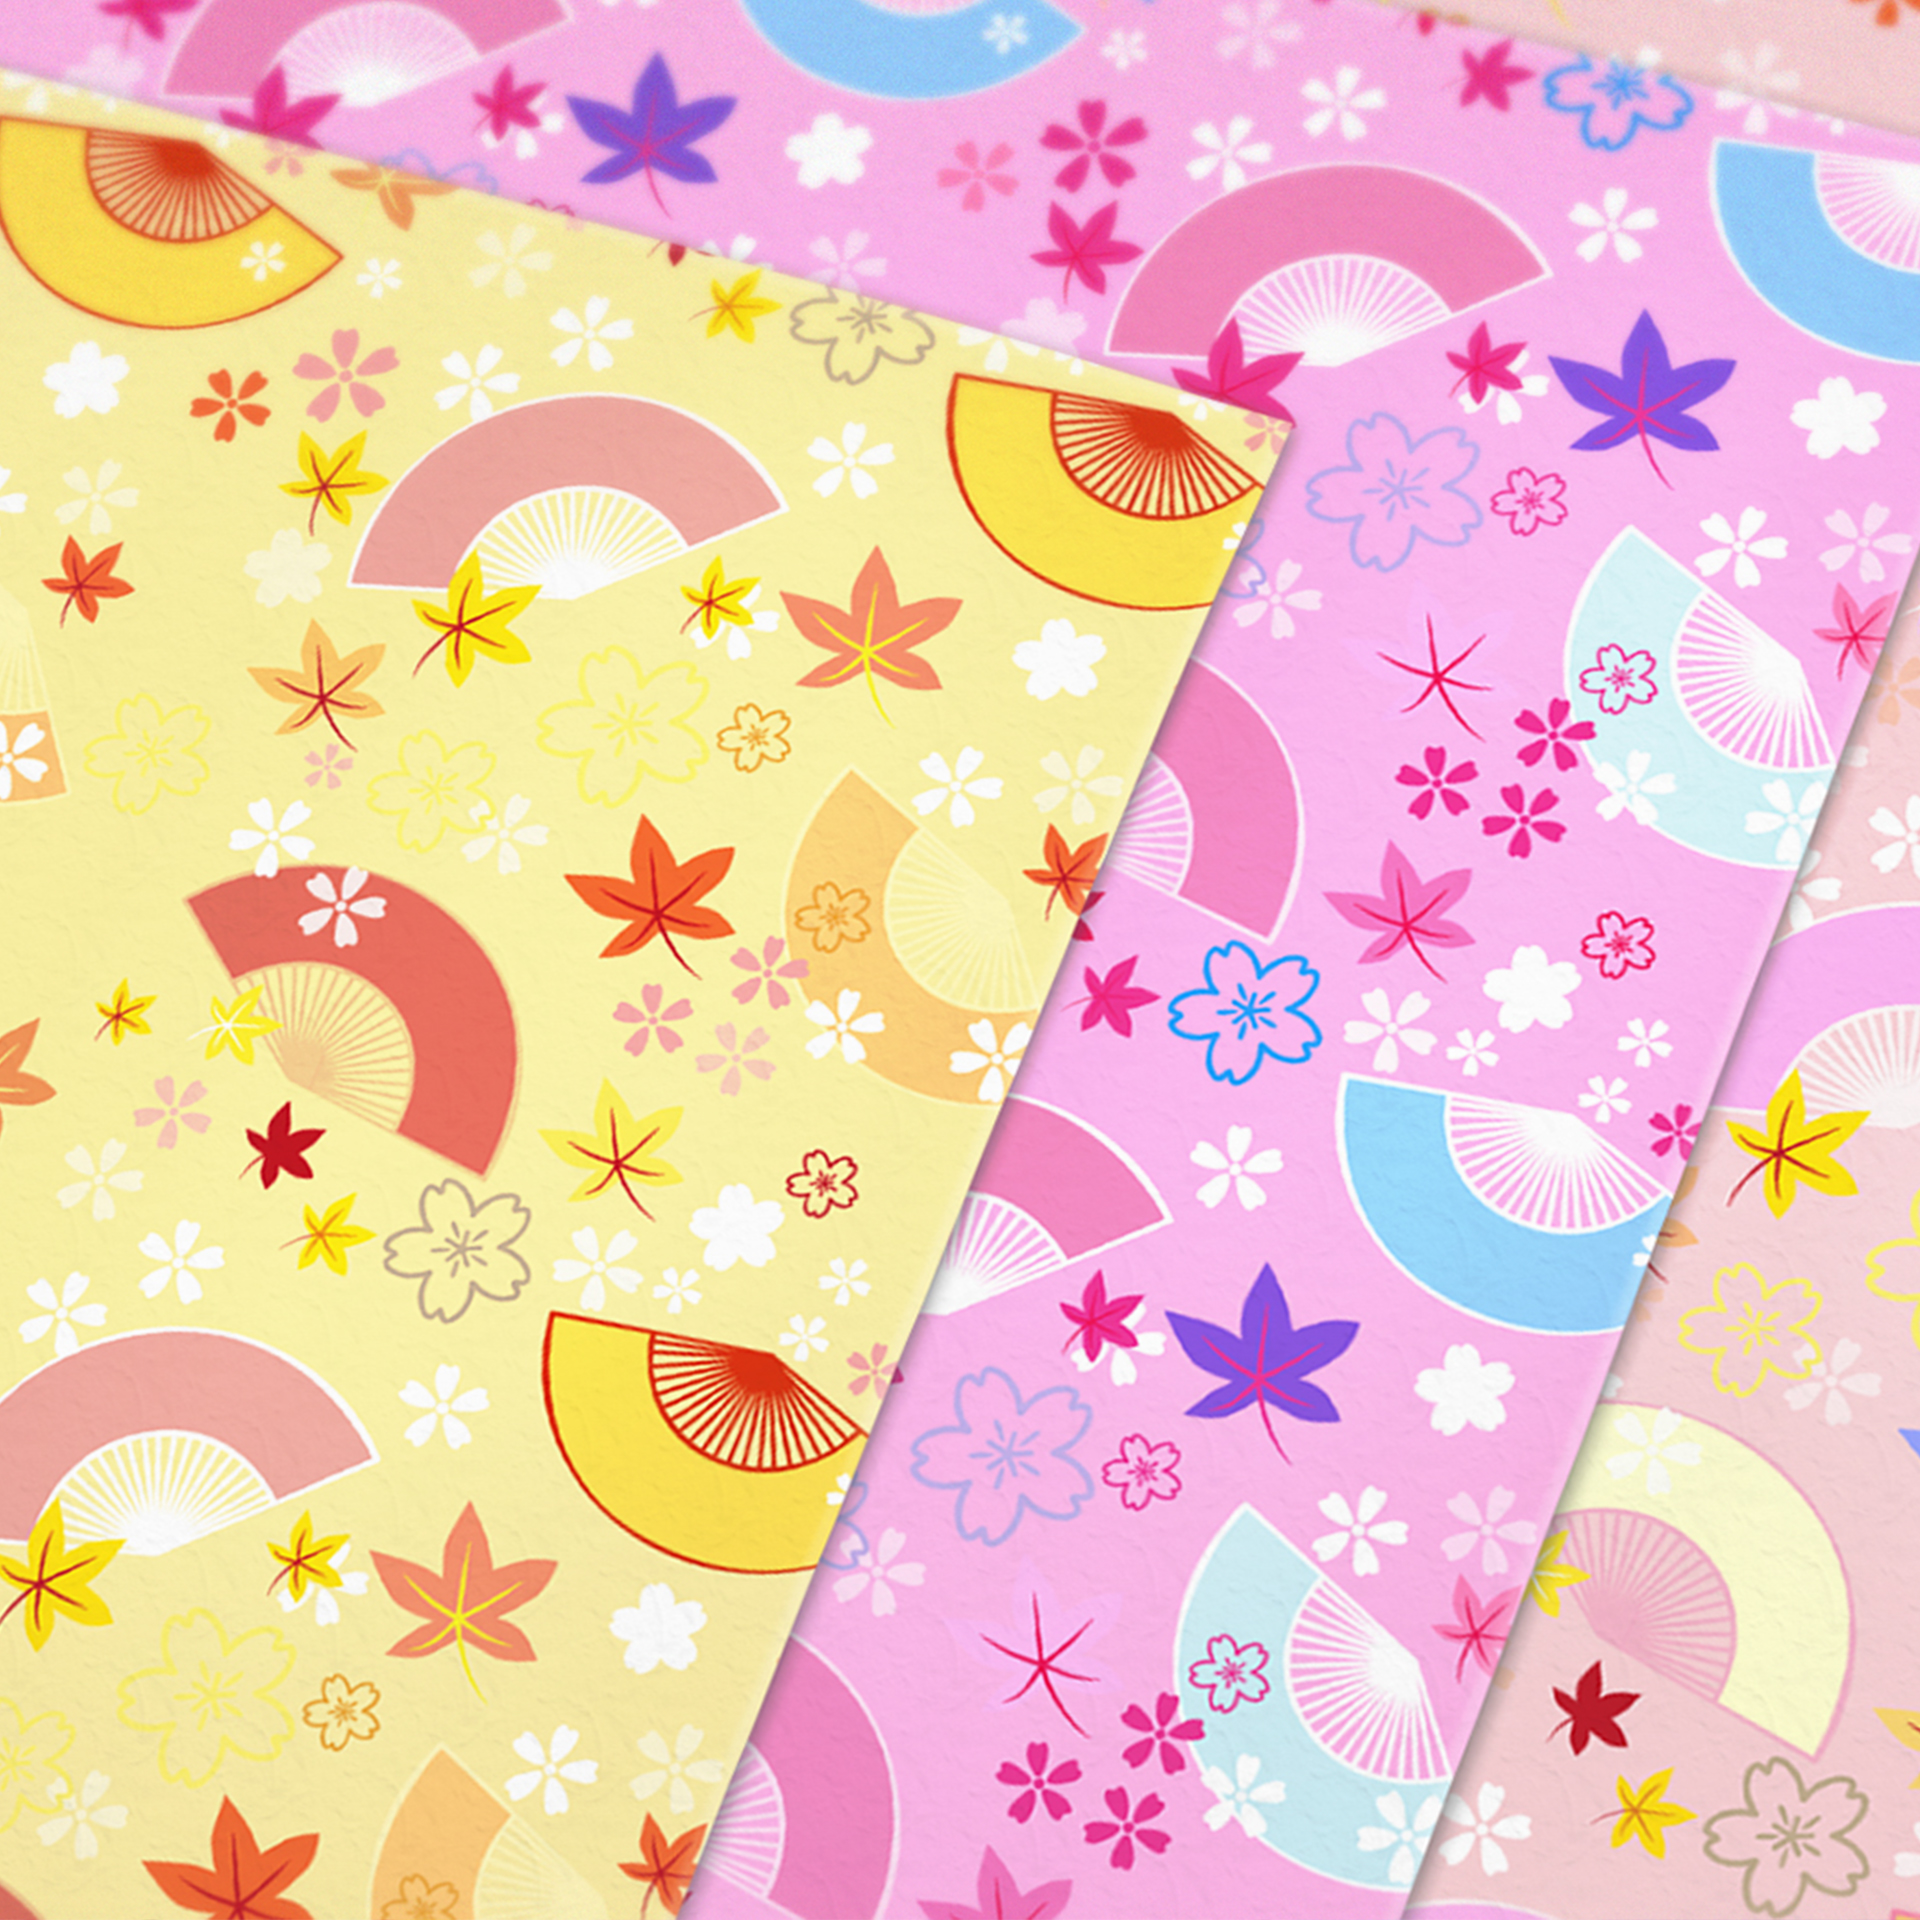 graphic about Origami Paper Printable called Printable Origami Paper Package deal - Mega Pack